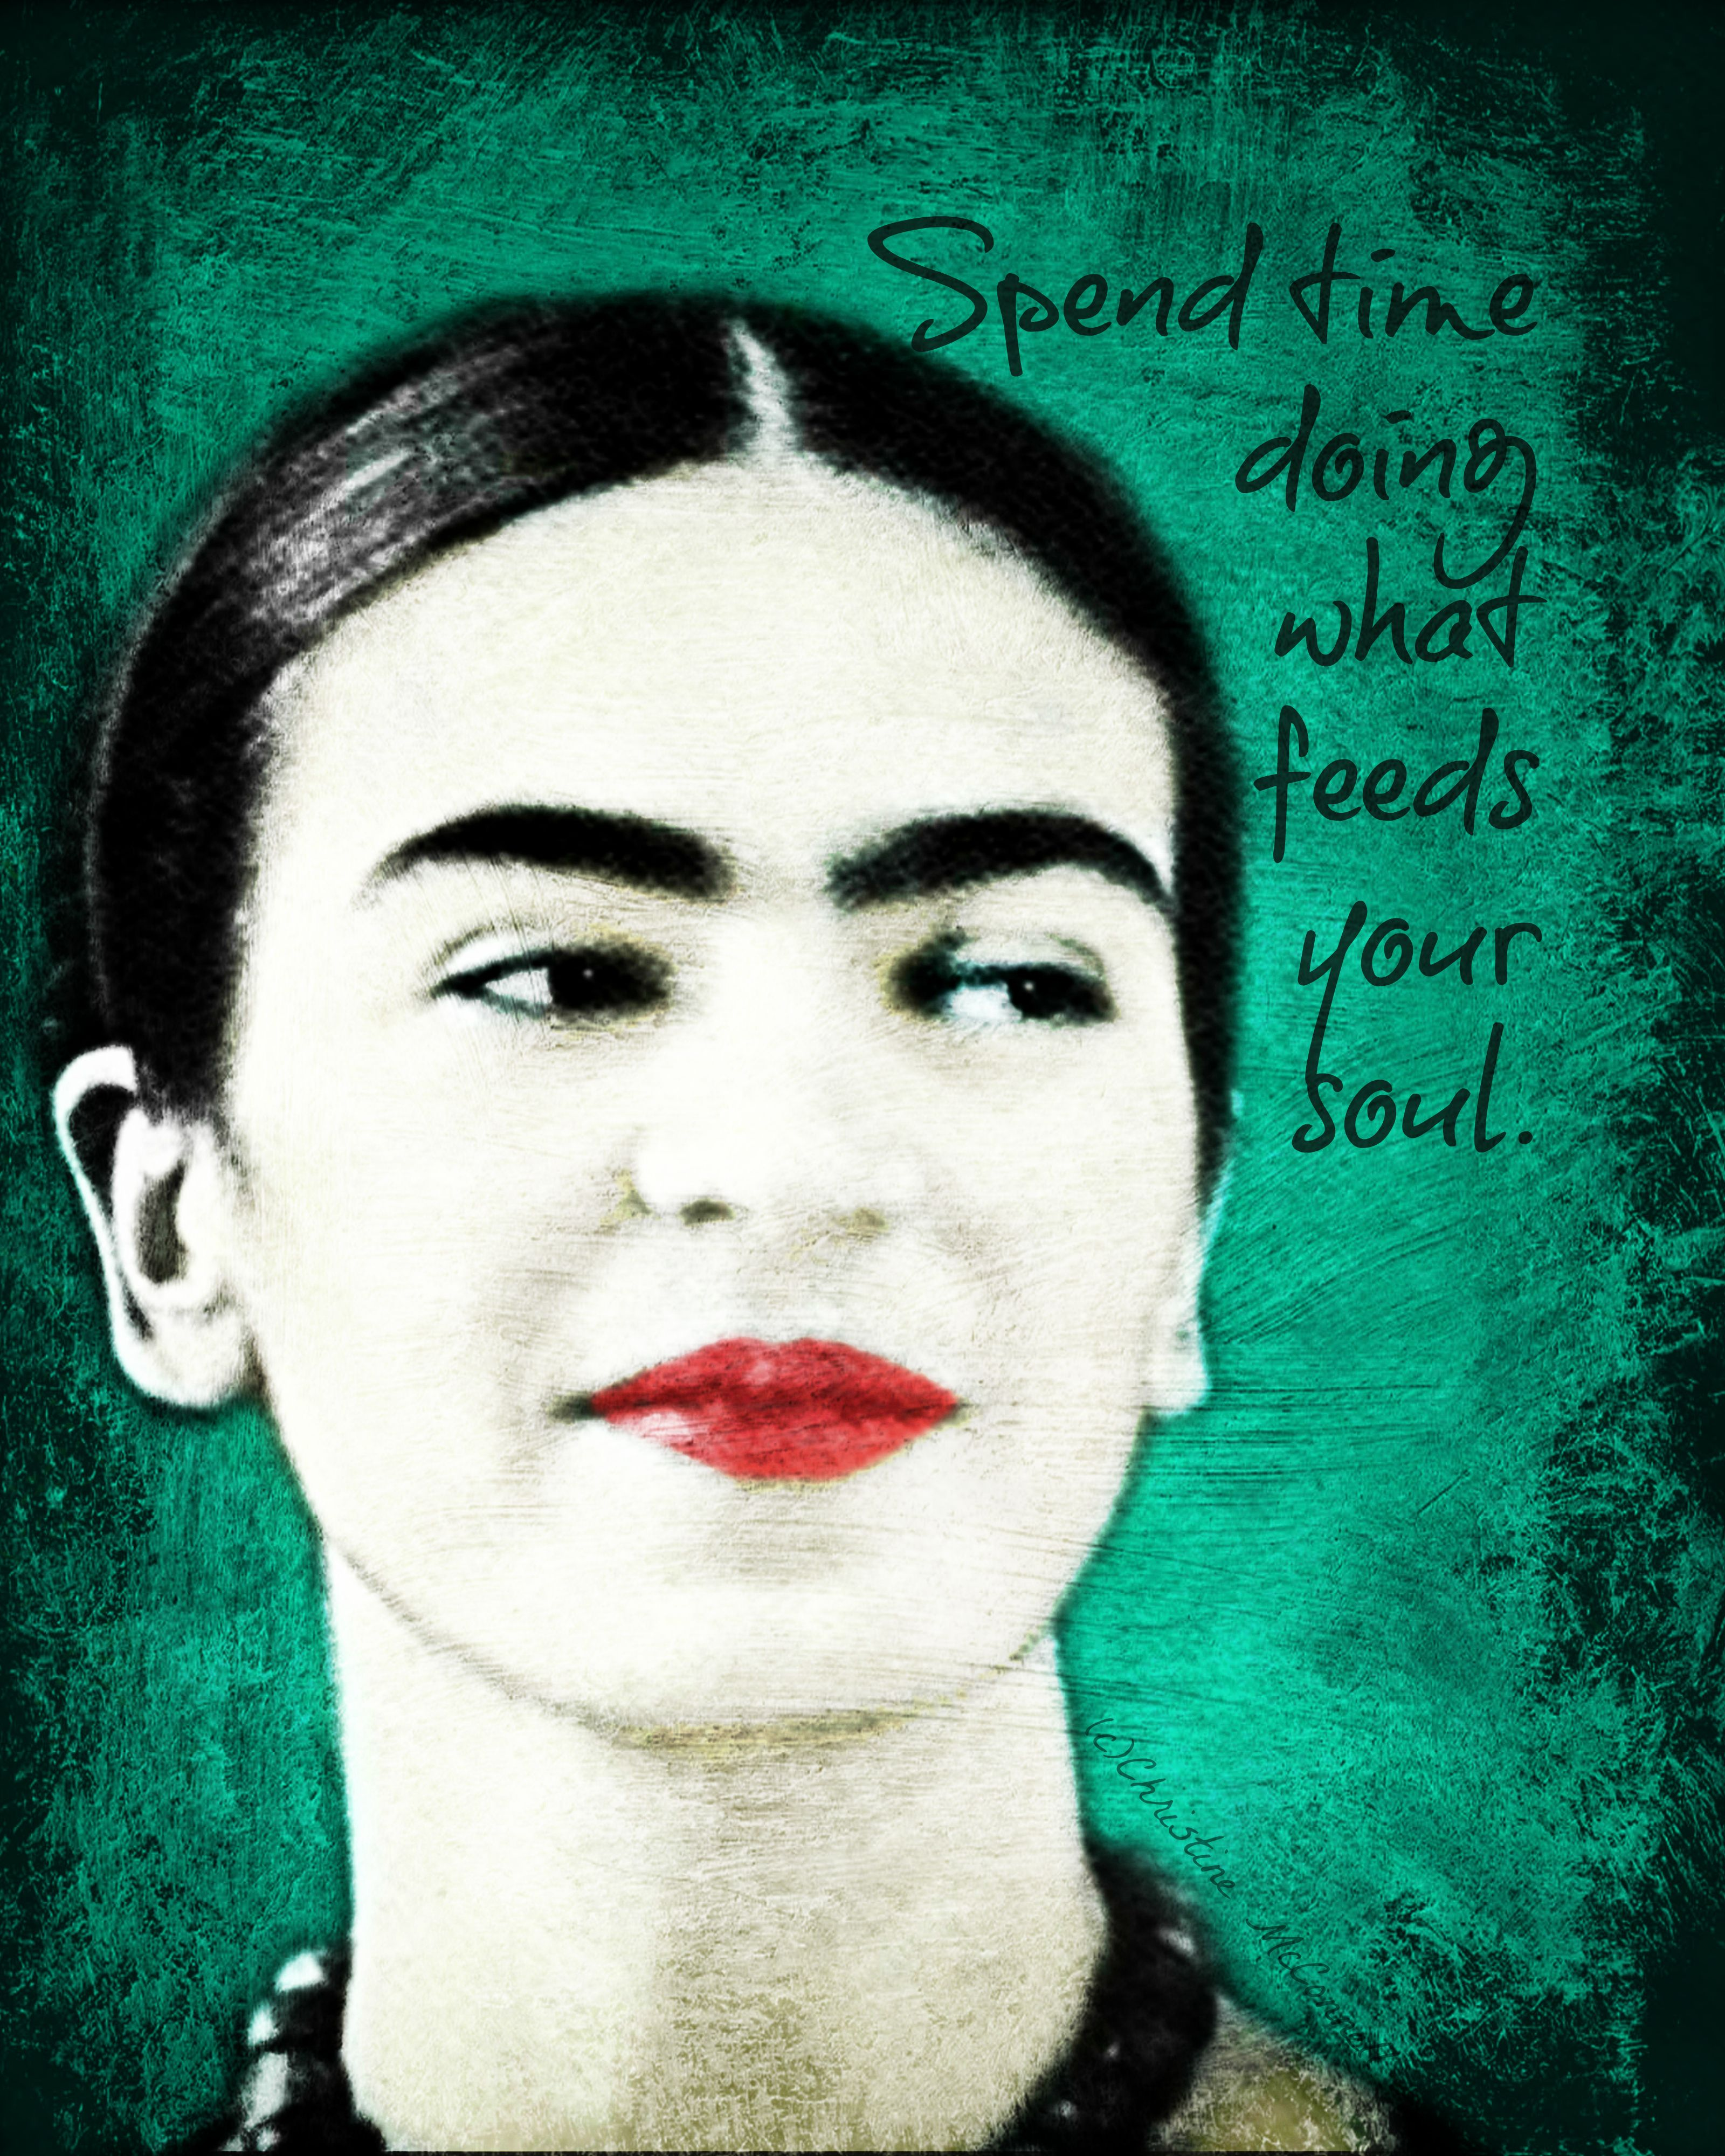 Quote Des Artistes Peintres frida kahlo painting effect inspirational print available at